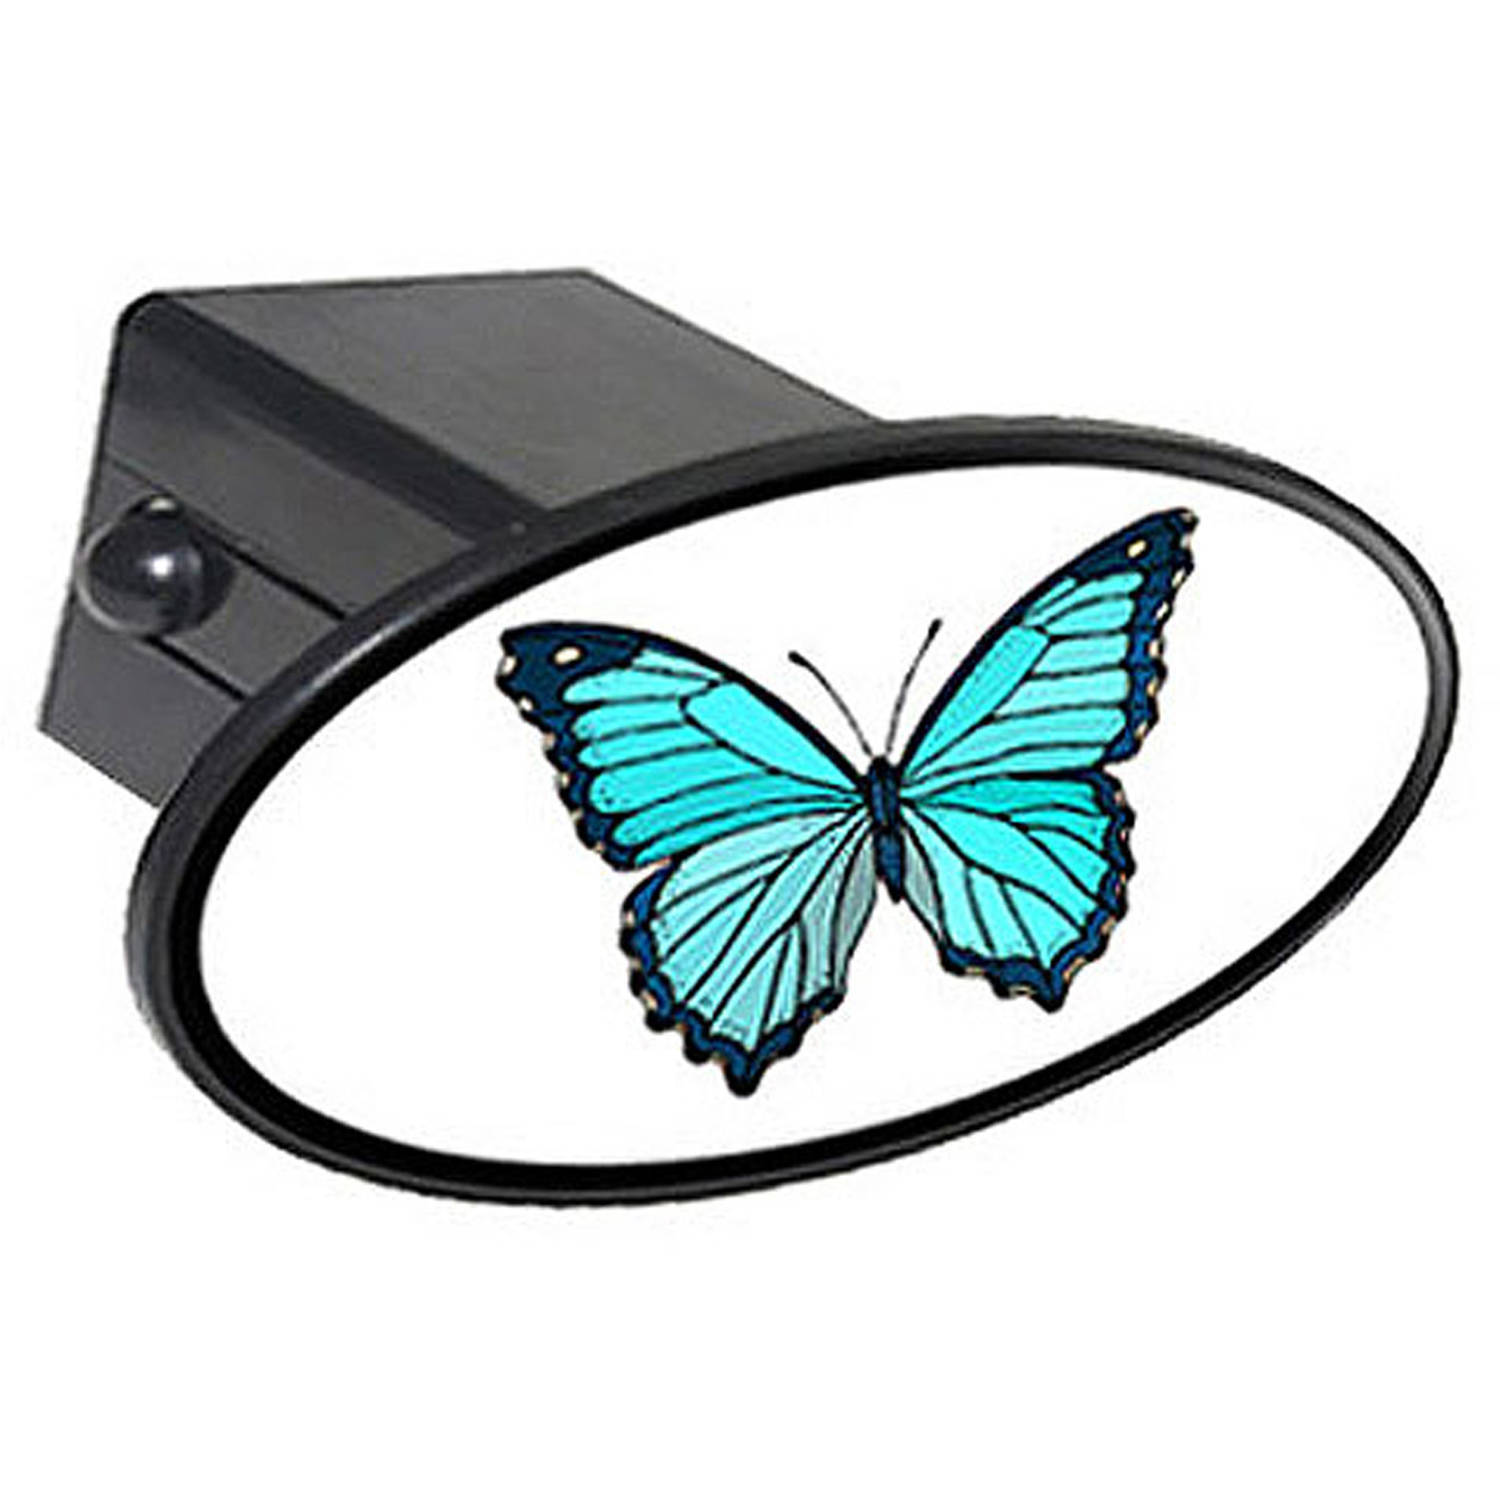 "Butterfly Teal Blue 2"" Oval Tow Trailer Hitch Cover Plug Insert"